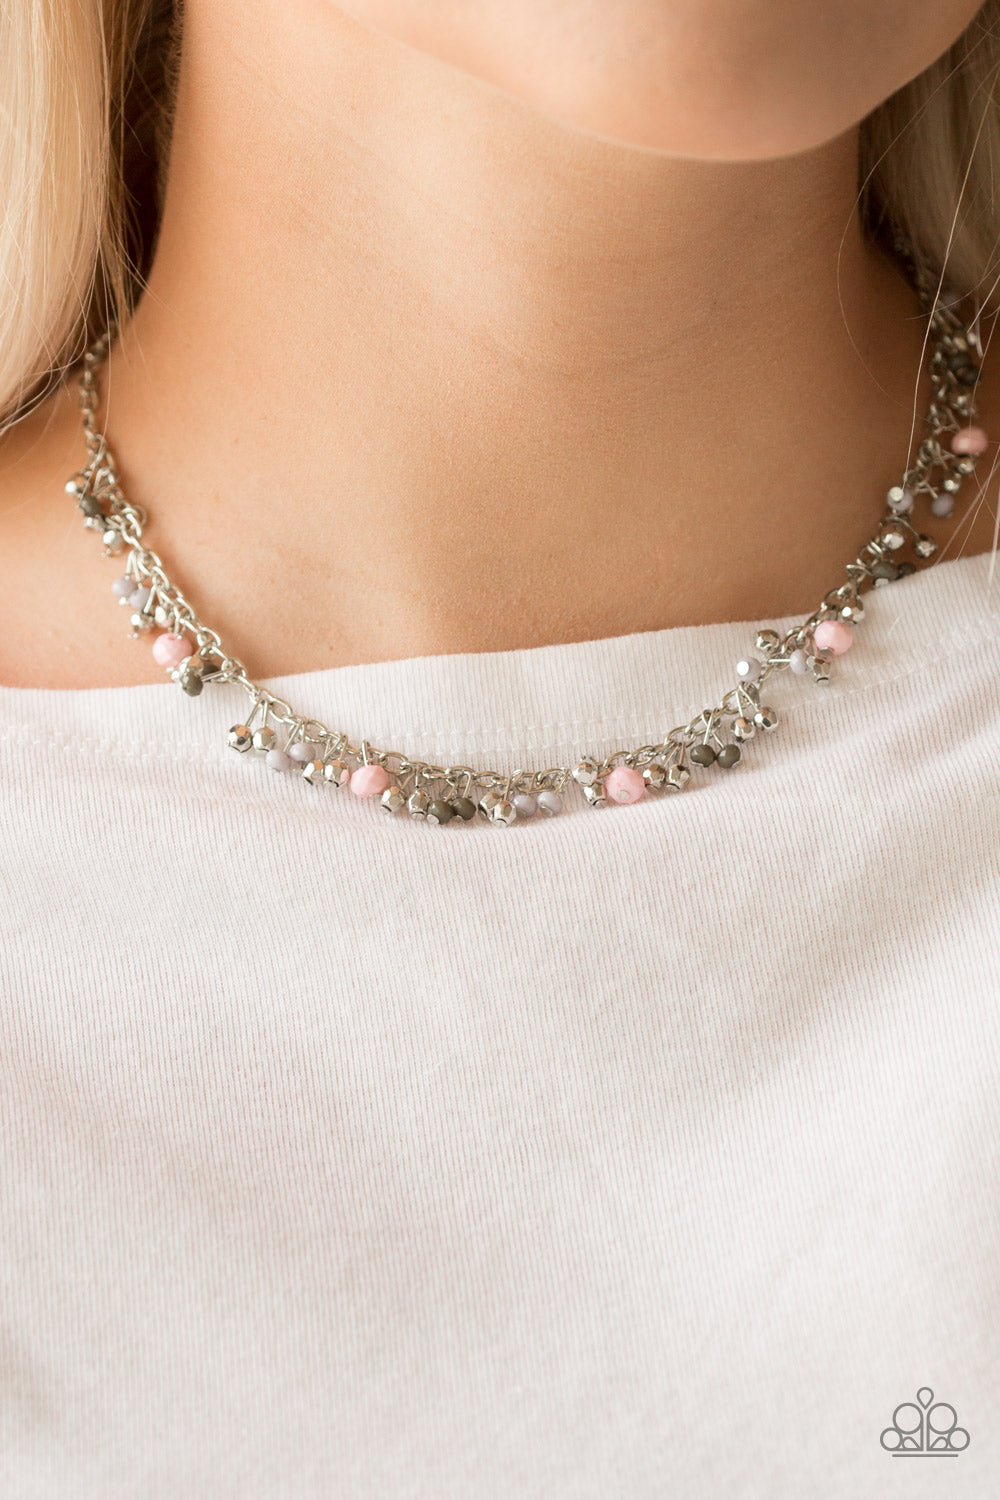 Sailing The Seven Seas - Pink Paparazzi Necklace - Pink Dragon Jewels